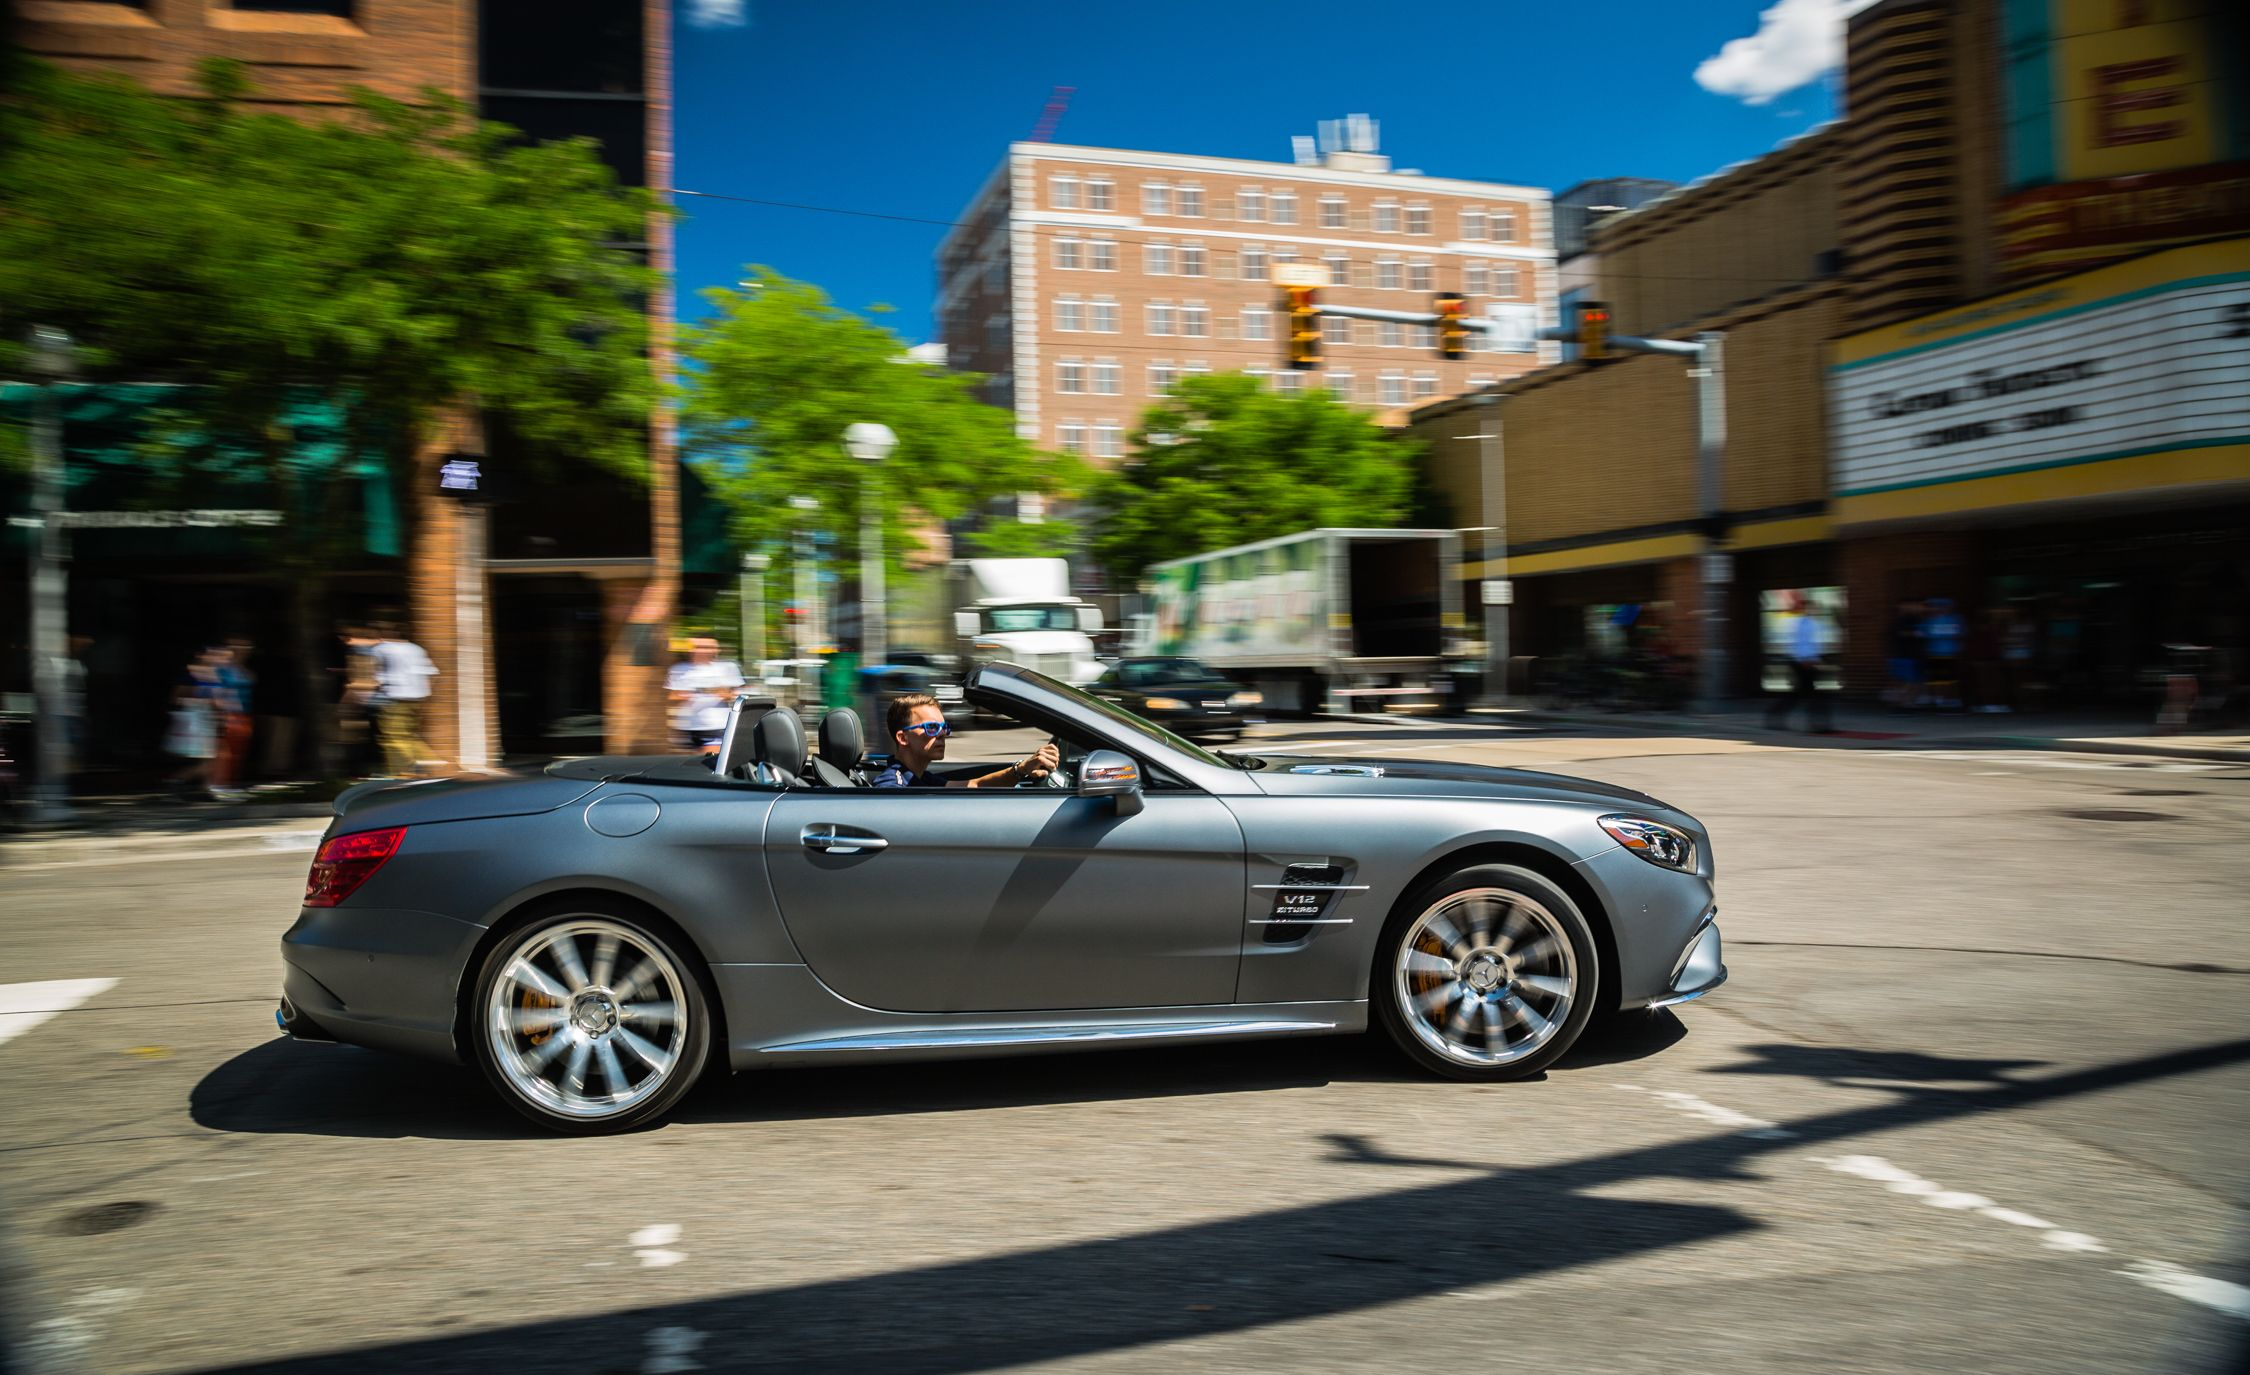 Mercedes-AMG SL63 / SL65 Reviews | Mercedes-AMG SL63 / SL65 Price ...